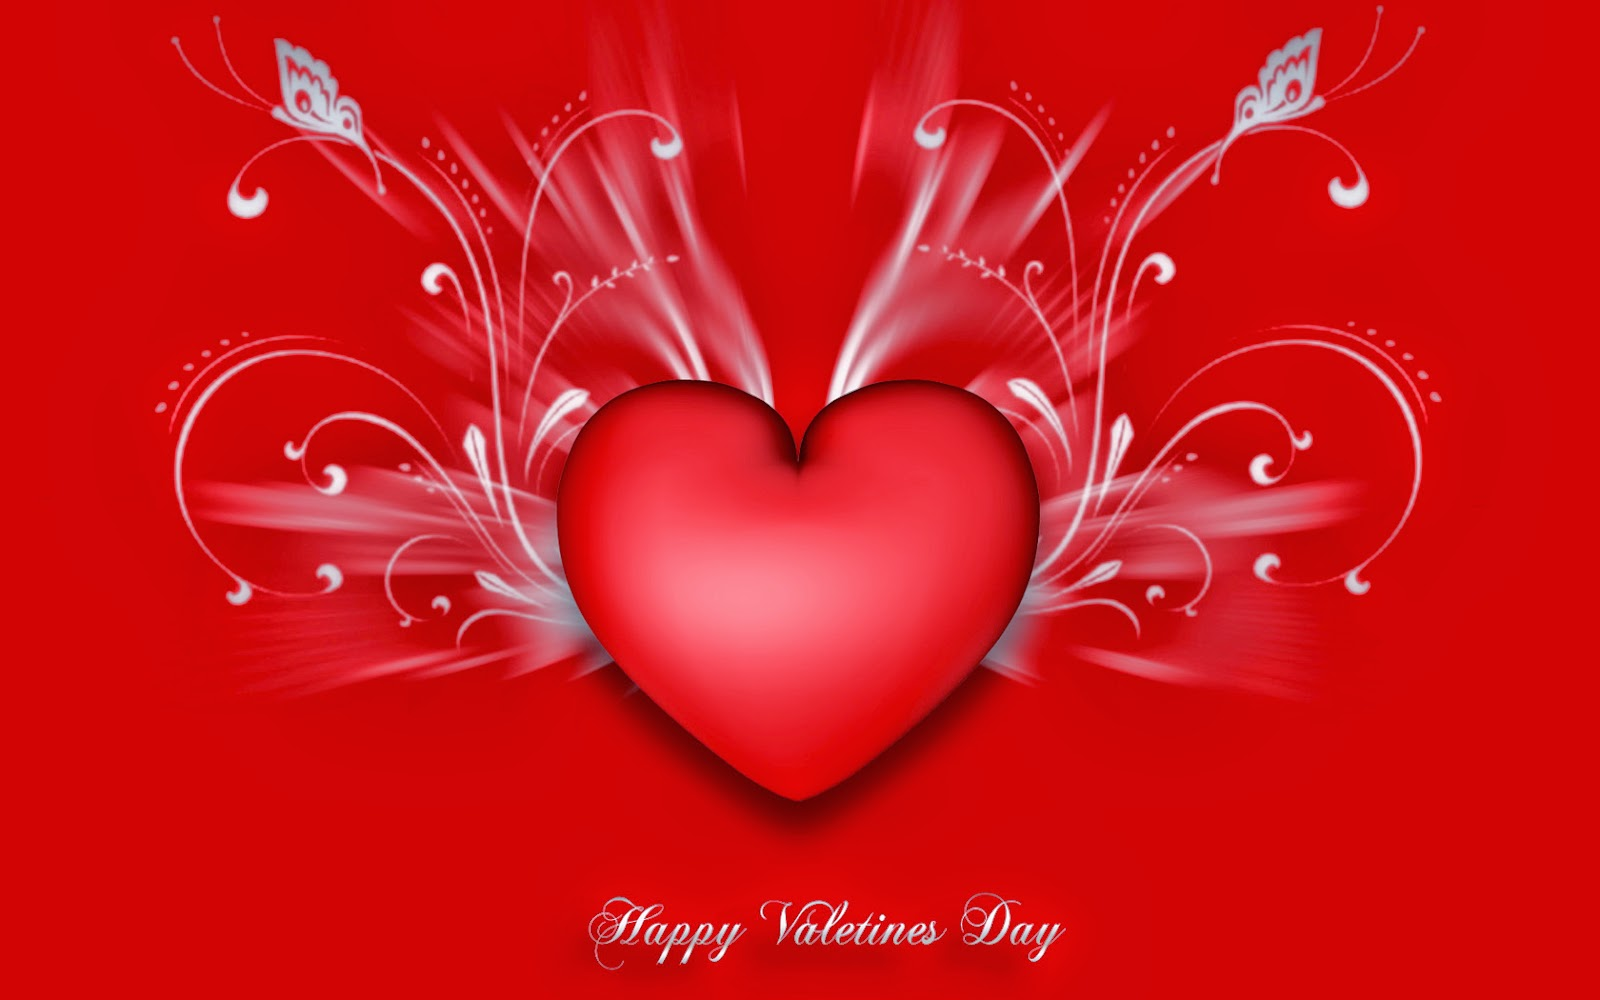 Free Valentine Day Wallpapers Wallpapersafari